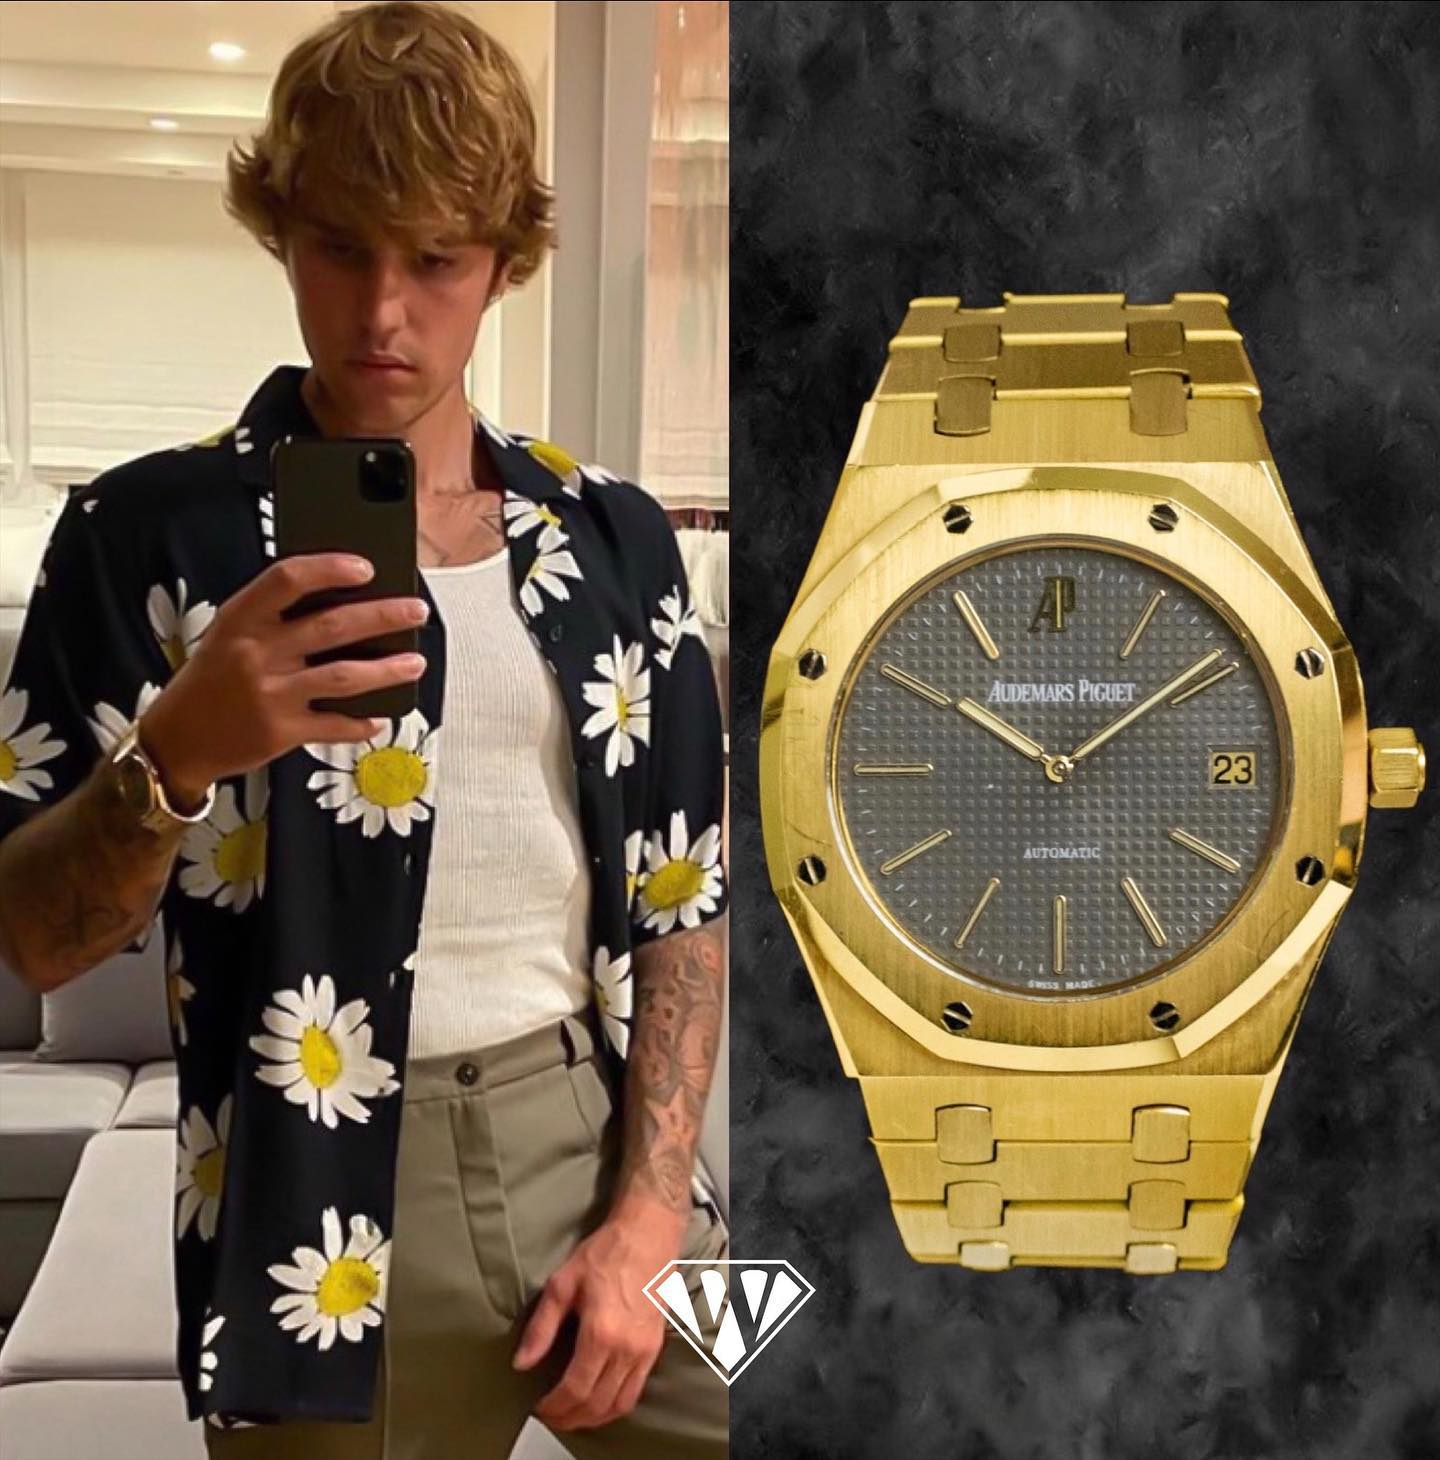 Justin Bieber Audemars Piguet Watch